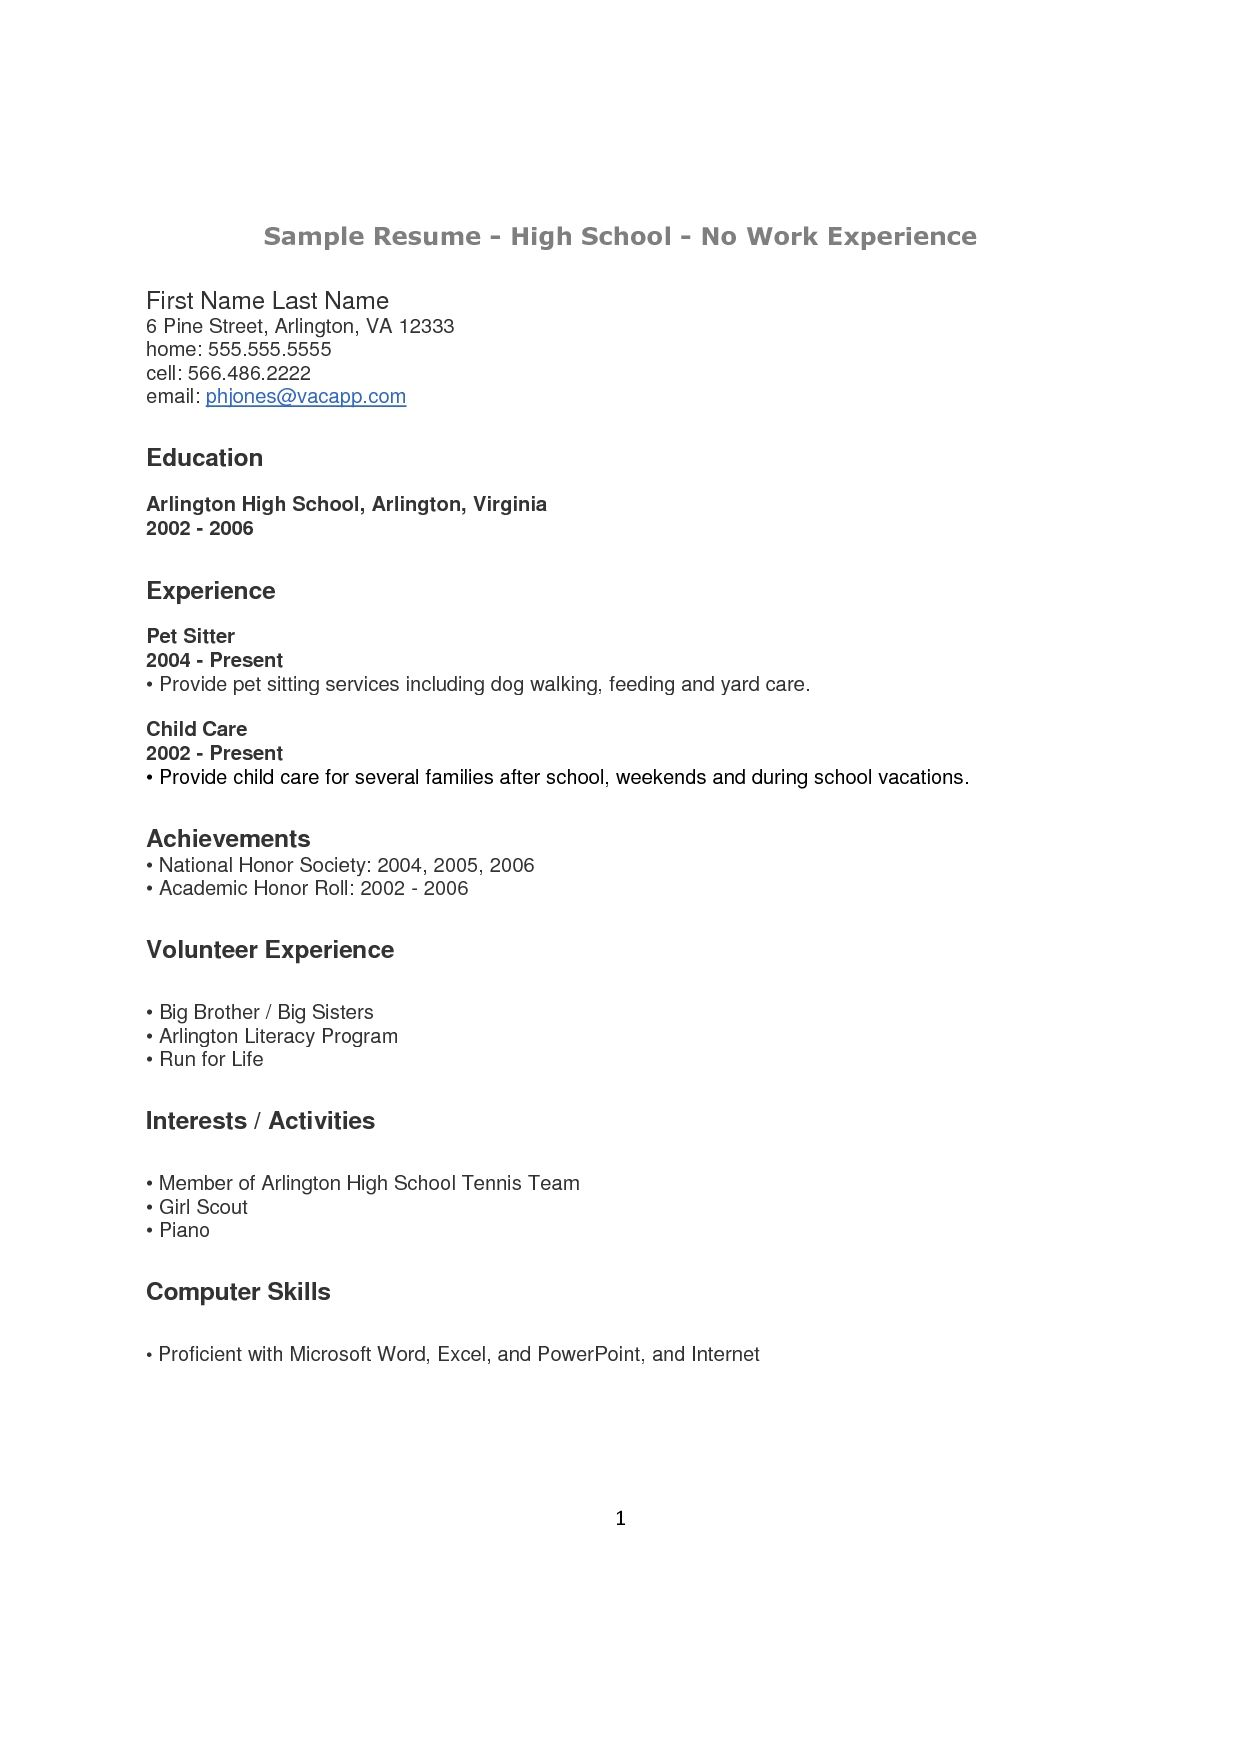 high school student resume with no work experience examples of student resumes with no work experience - How To Make A Resume With No Experience Example